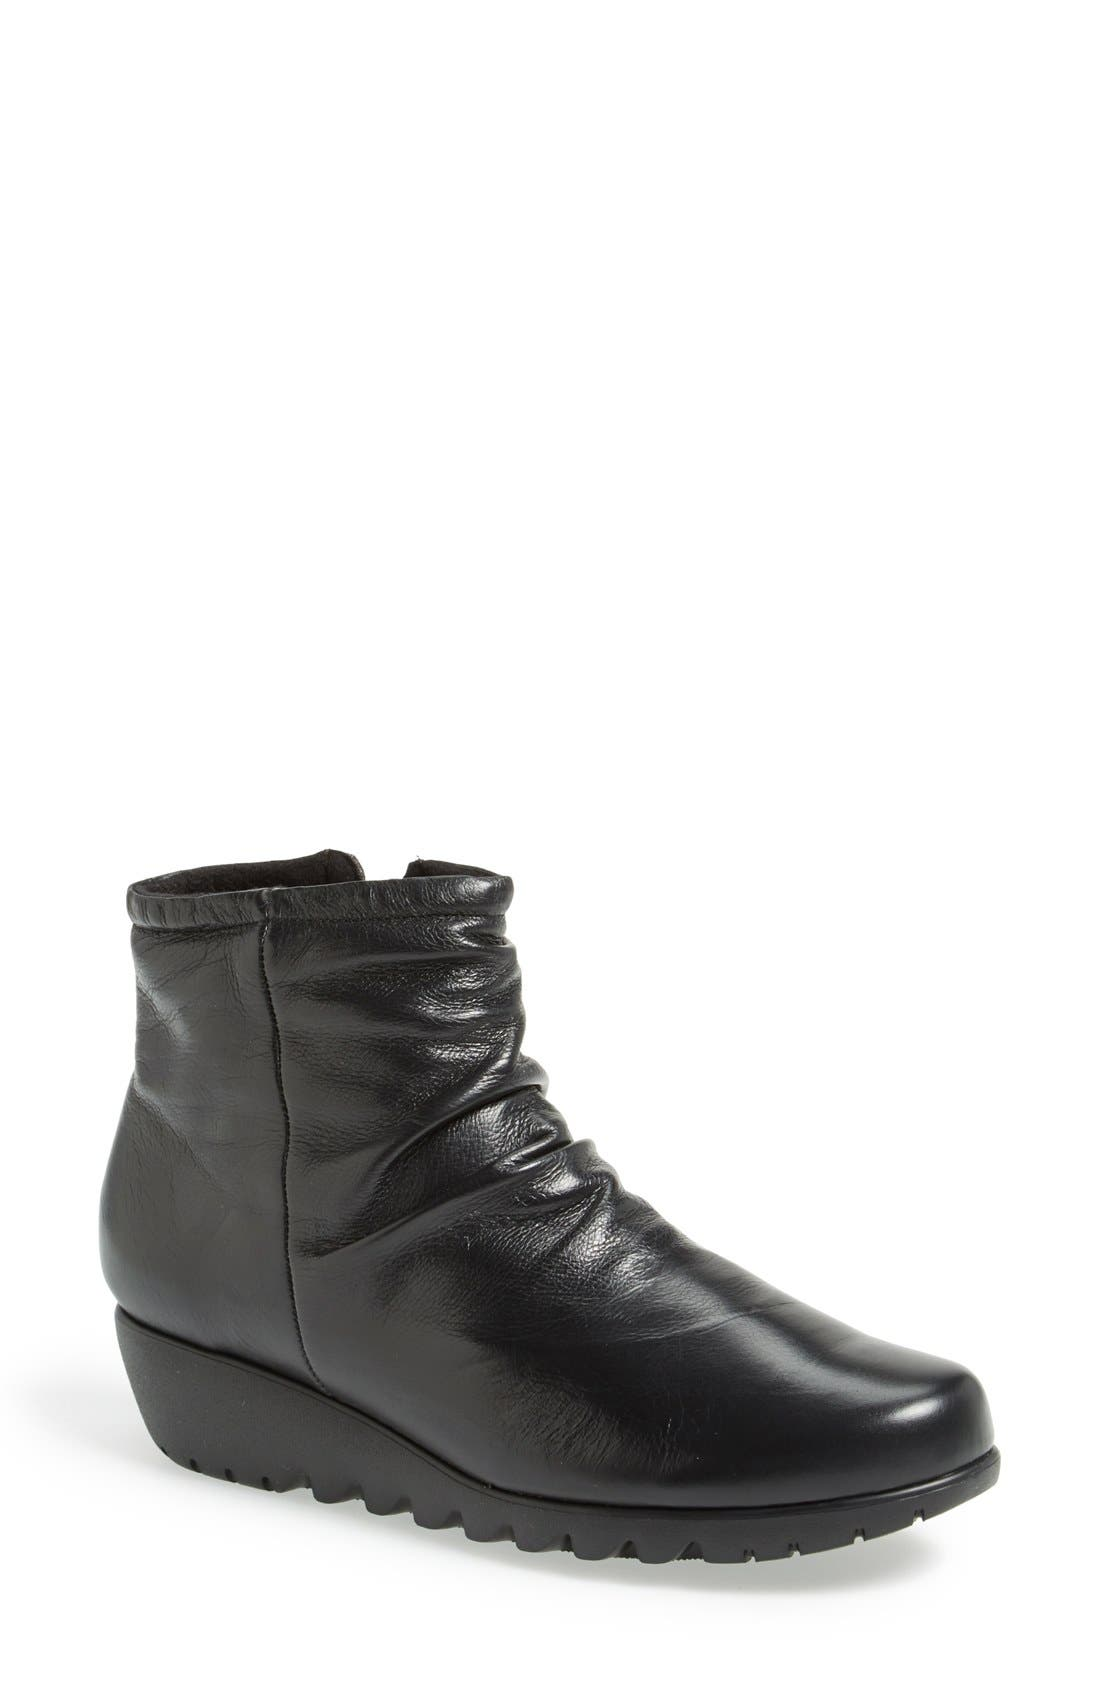 'Riley' Ankle Boot,                             Main thumbnail 1, color,                             001